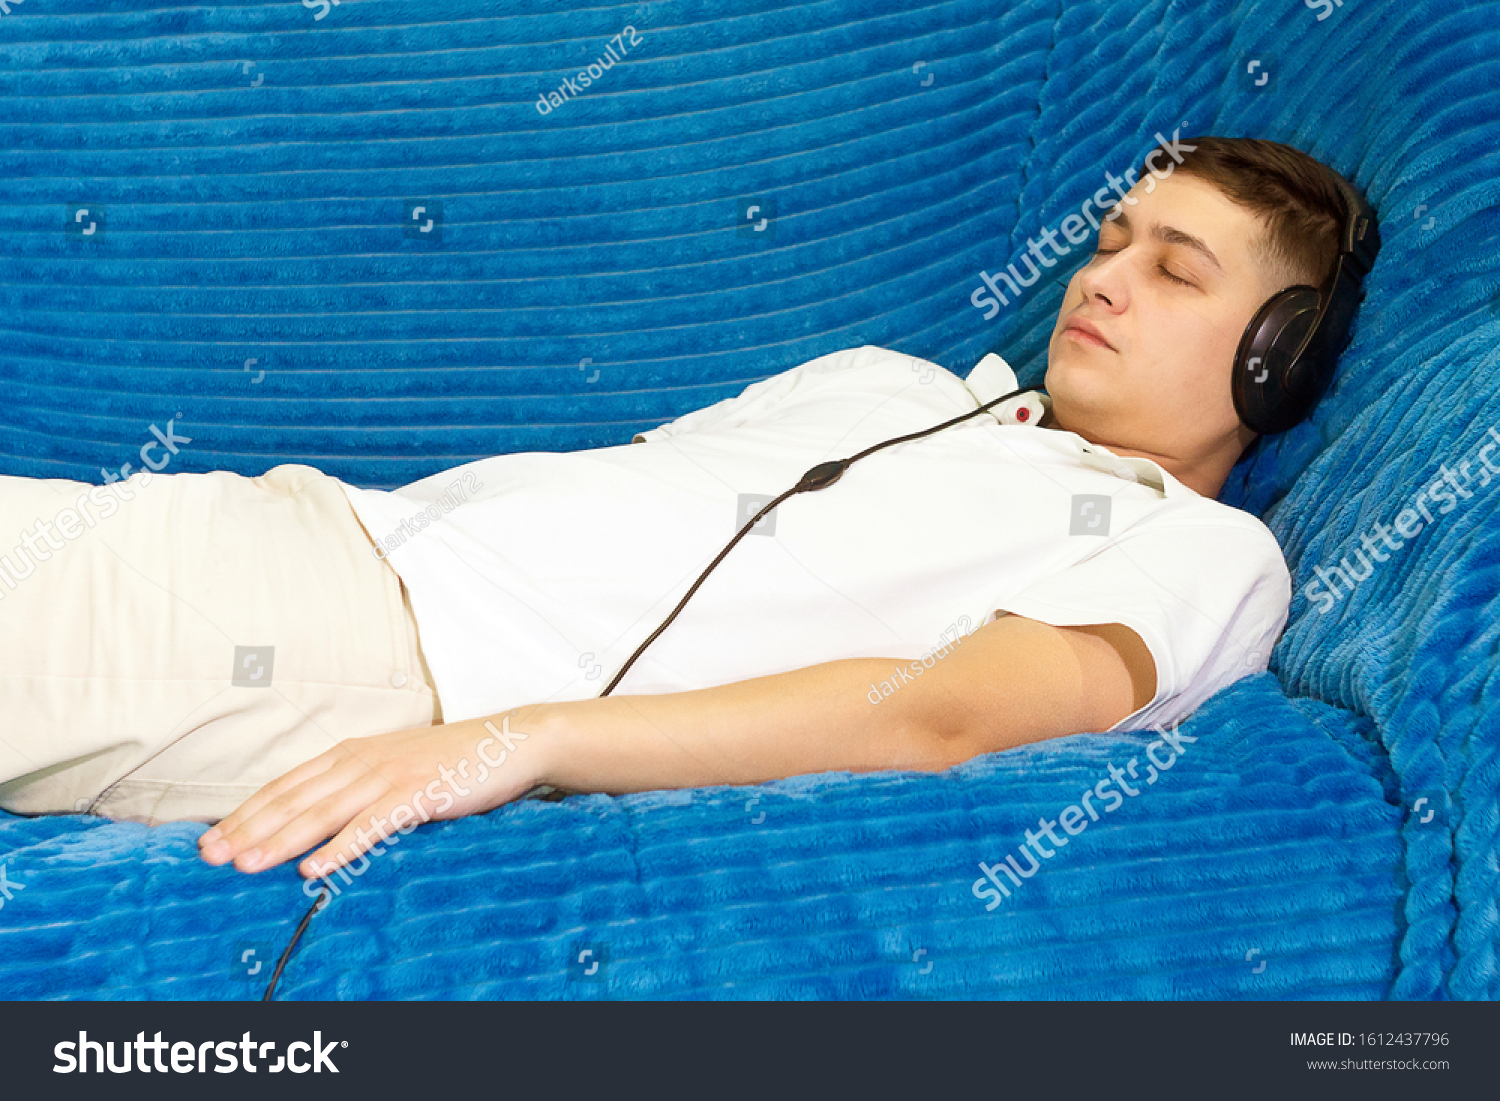 a young man in a white t-shirt at home listening to relaxing music. relaxation relaxation, calmness #1612437796